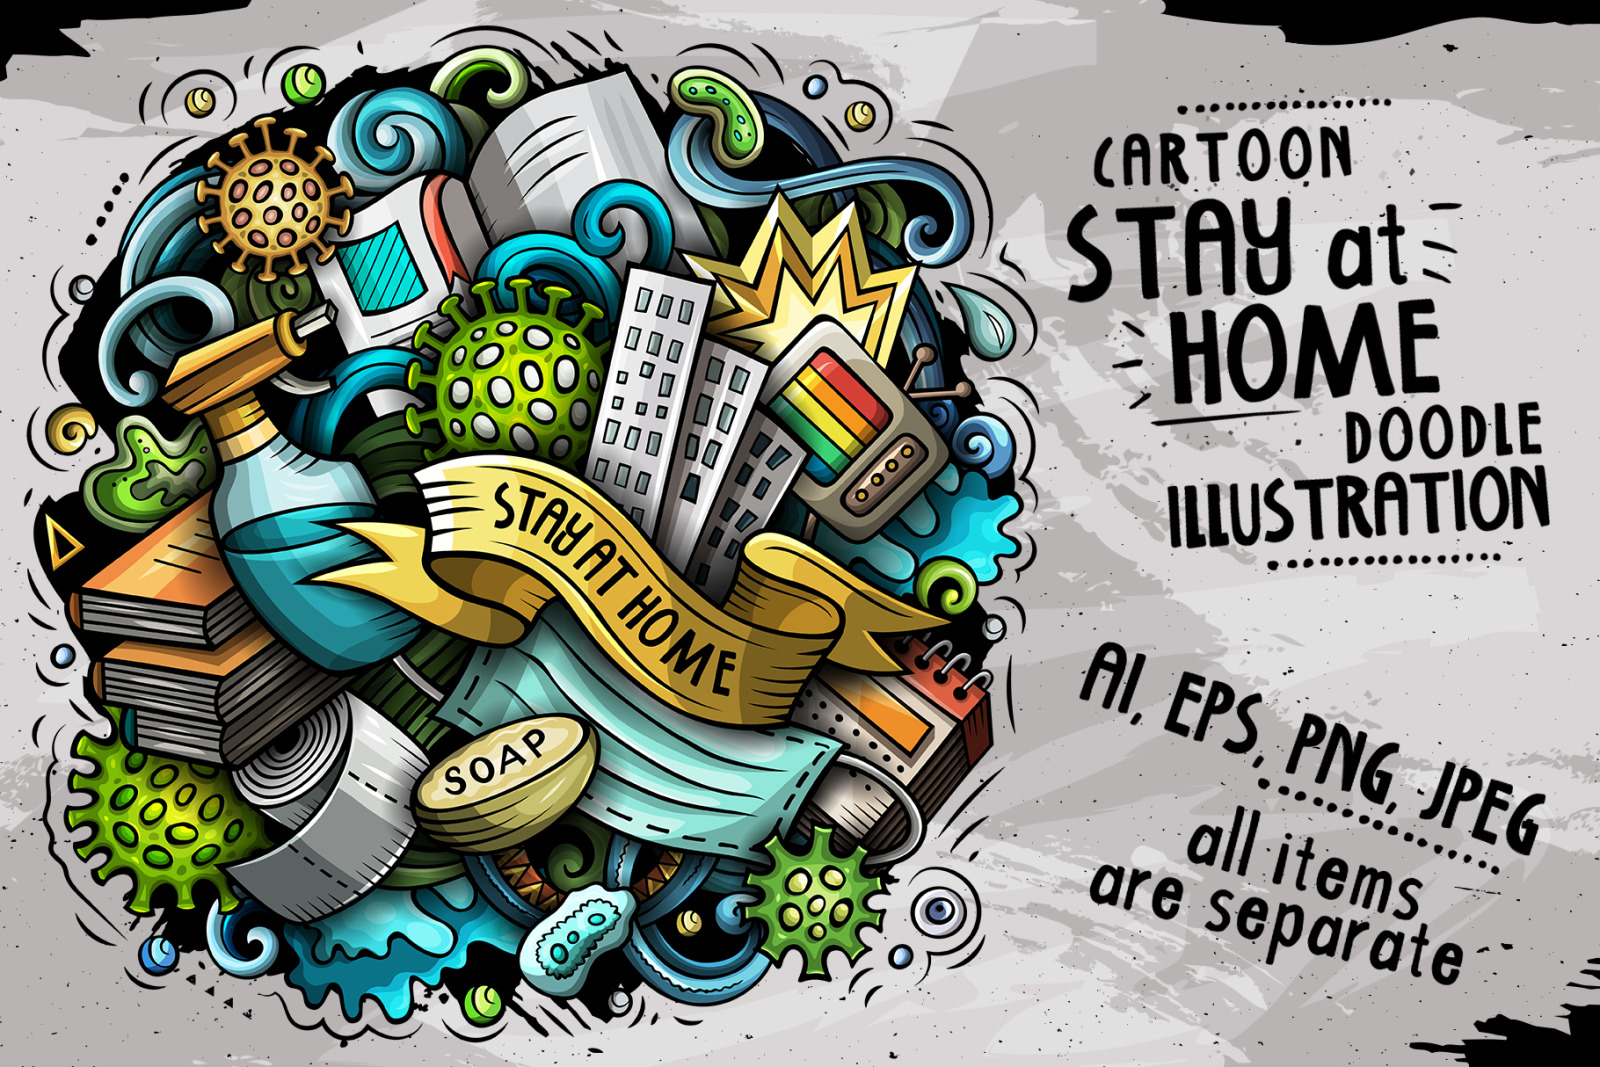 Cartoon vector doodles Stay at Home Illustration